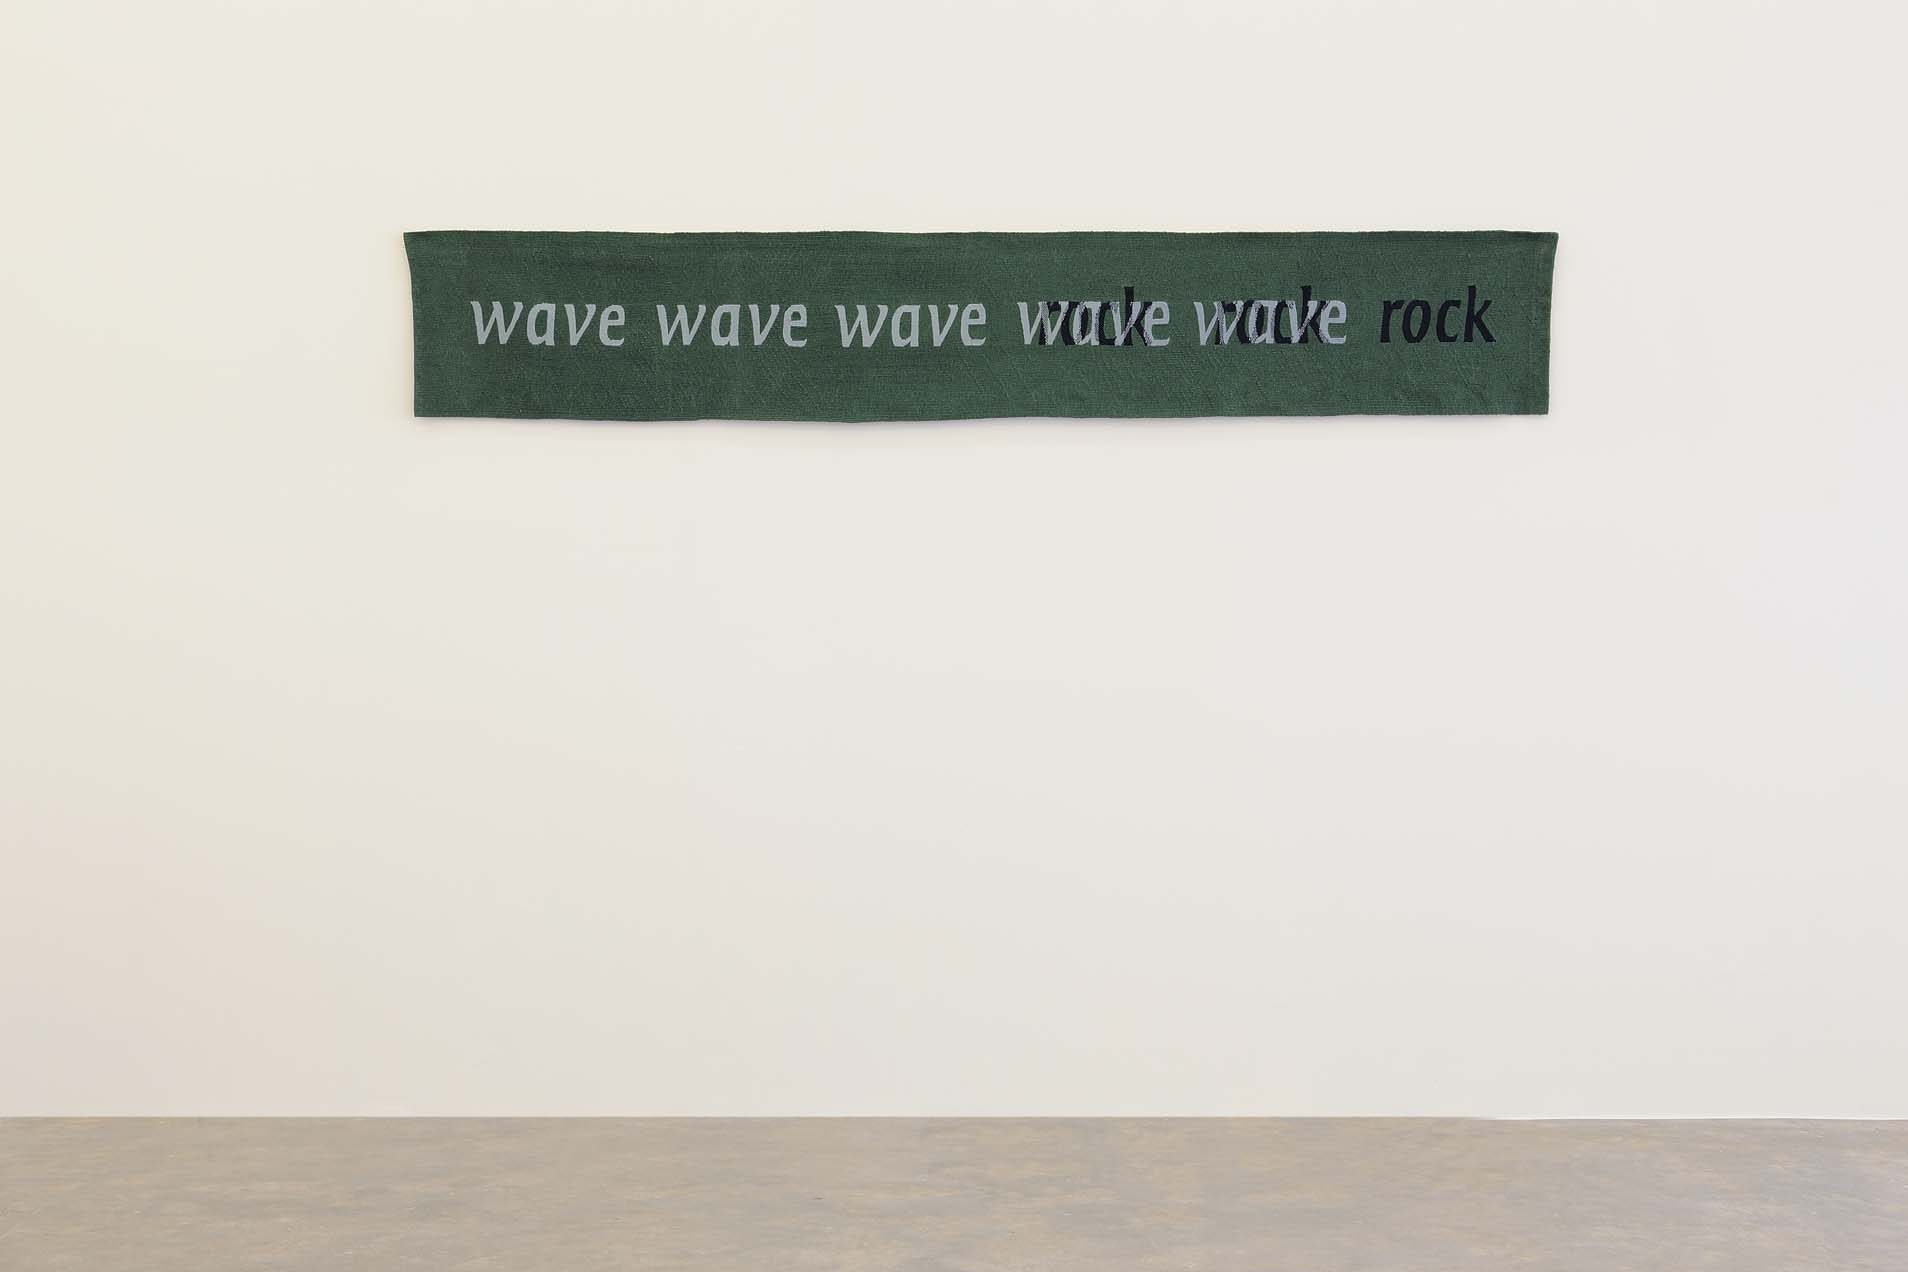 Wave/Rock, 1989 with Michael Harvey and Joanna Soroka, Tapestry, wool, 44 x 268 cm, Unique